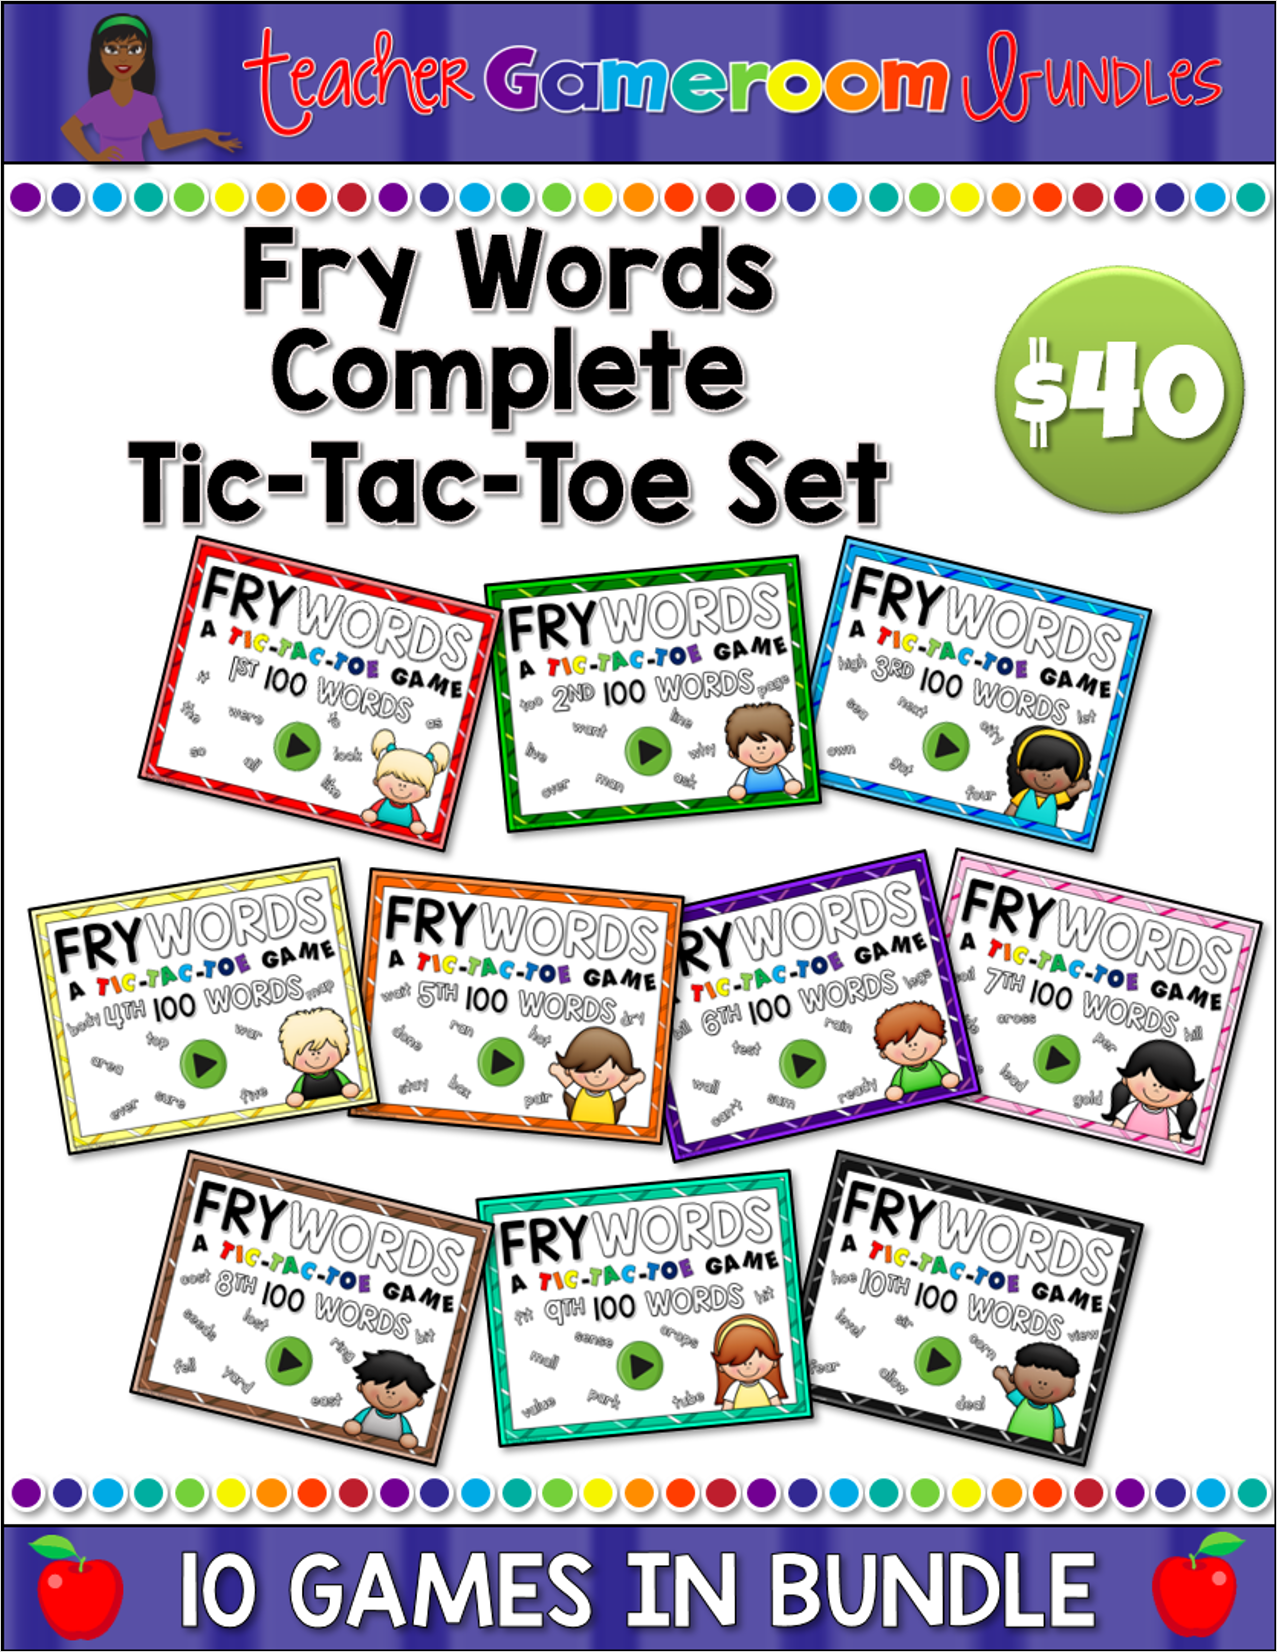 Fry Words Complete Tic-Tac-Toe Set